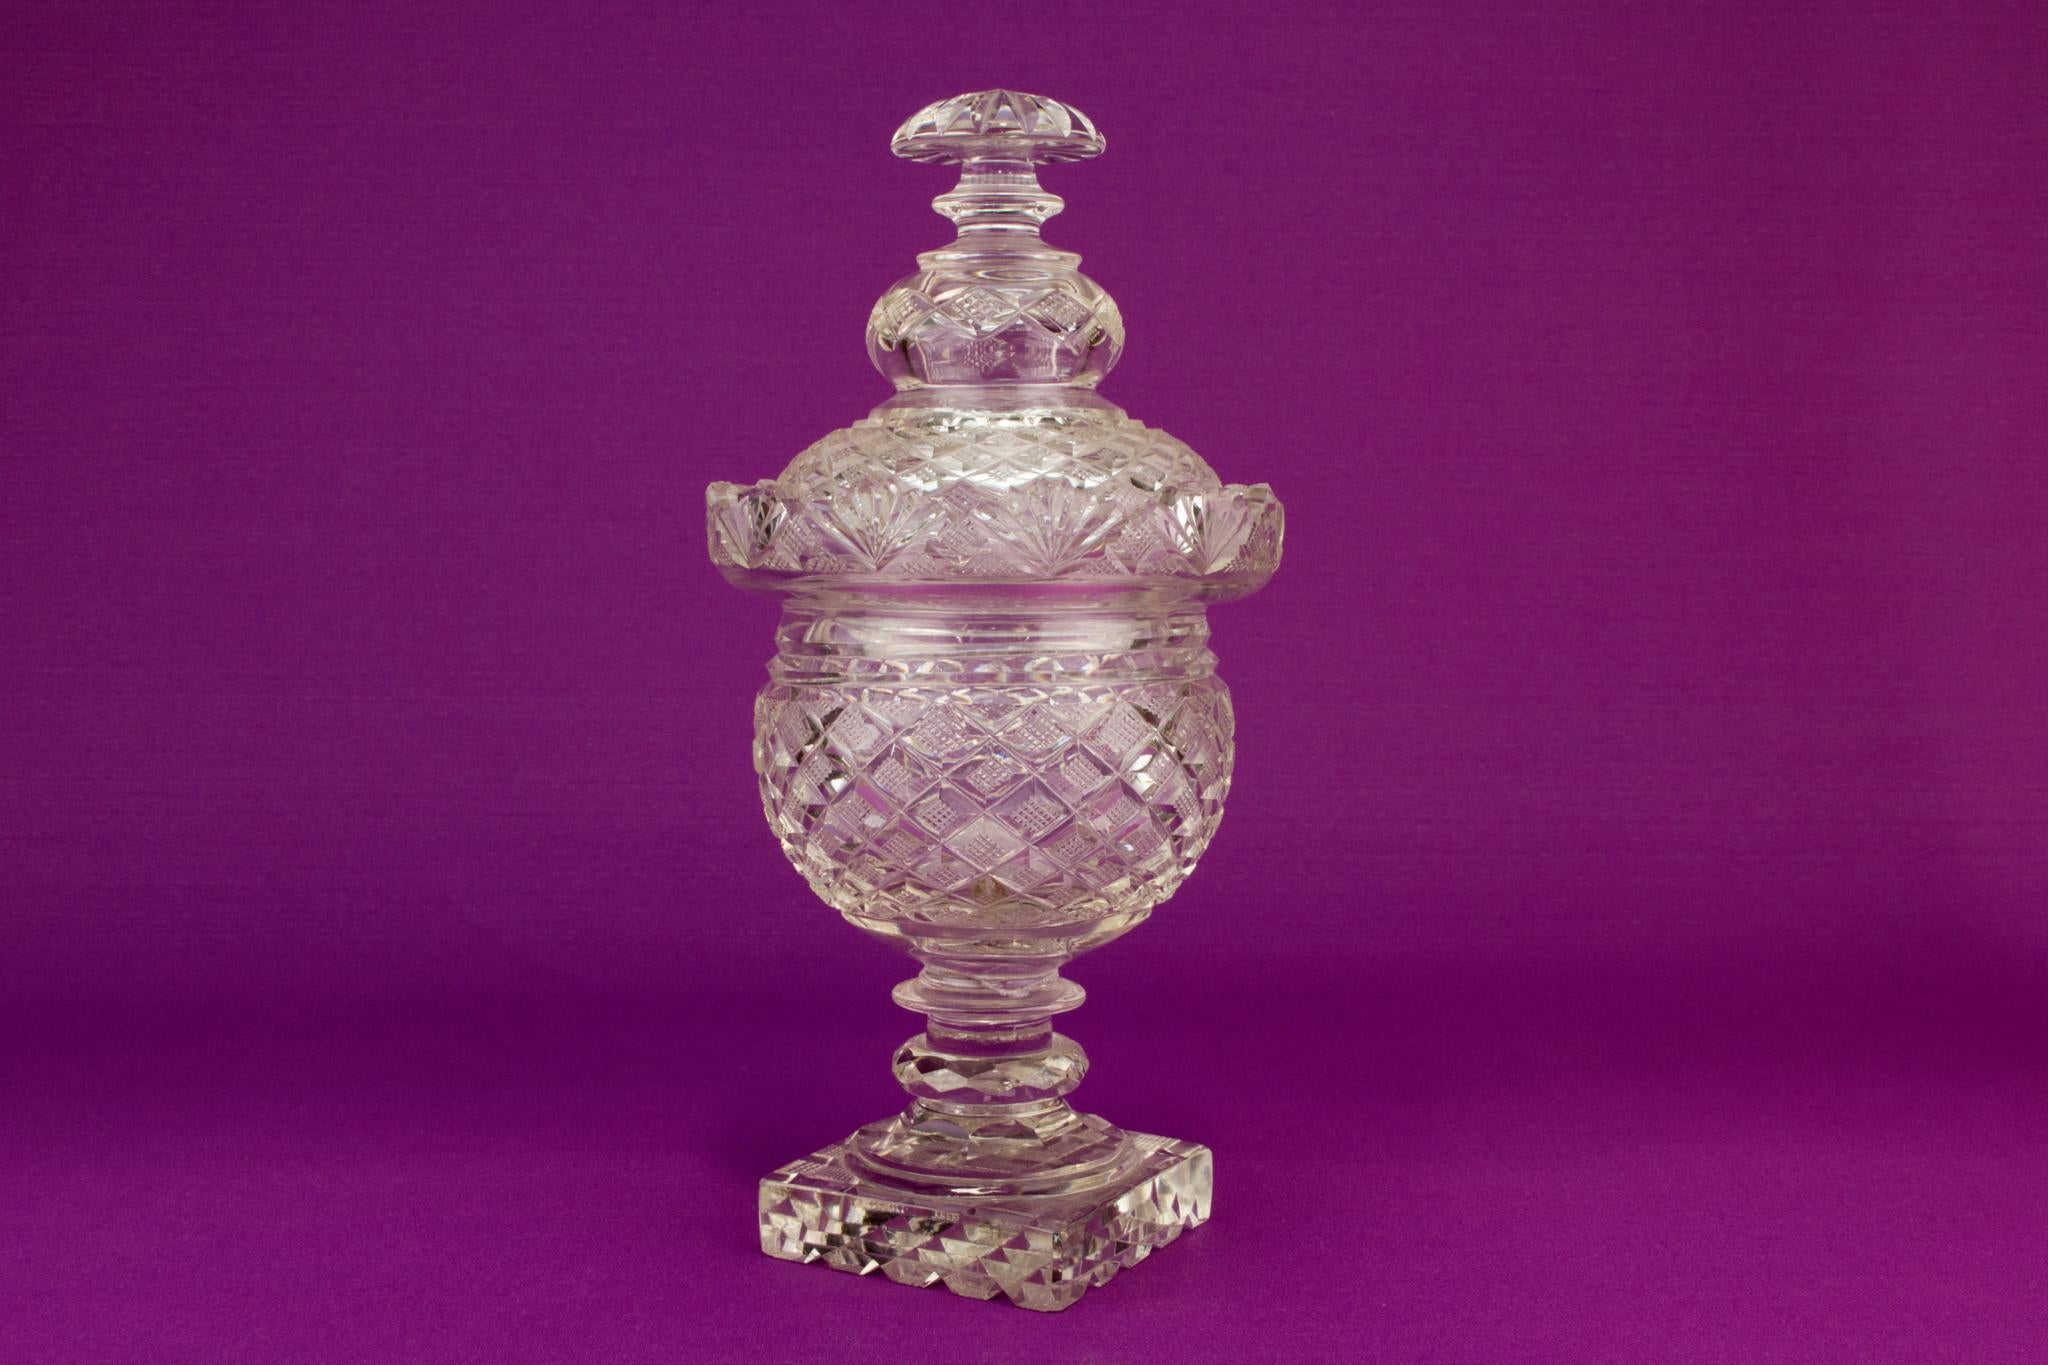 Cut glass serving bowl and lid, Irish 19th century